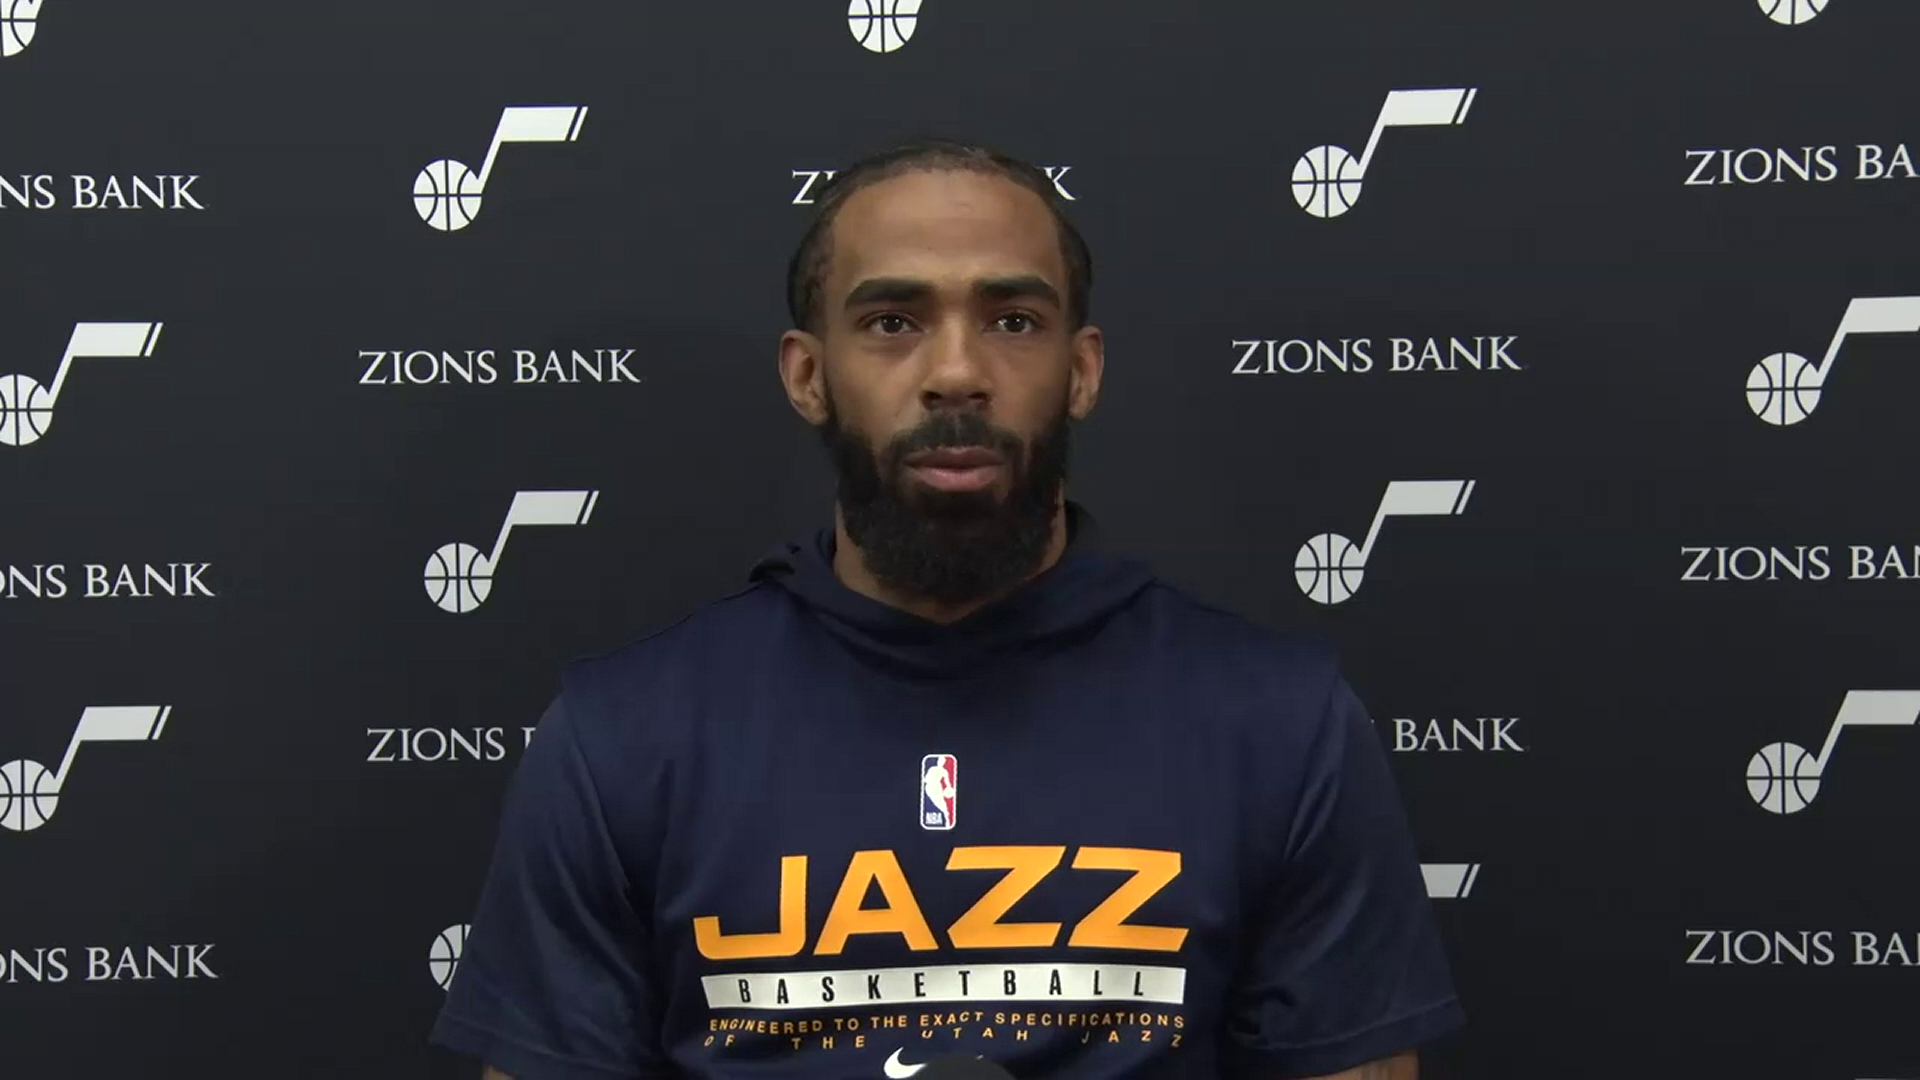 Shootaround 4.14—Mike talks about being potentially available to play versus OKC